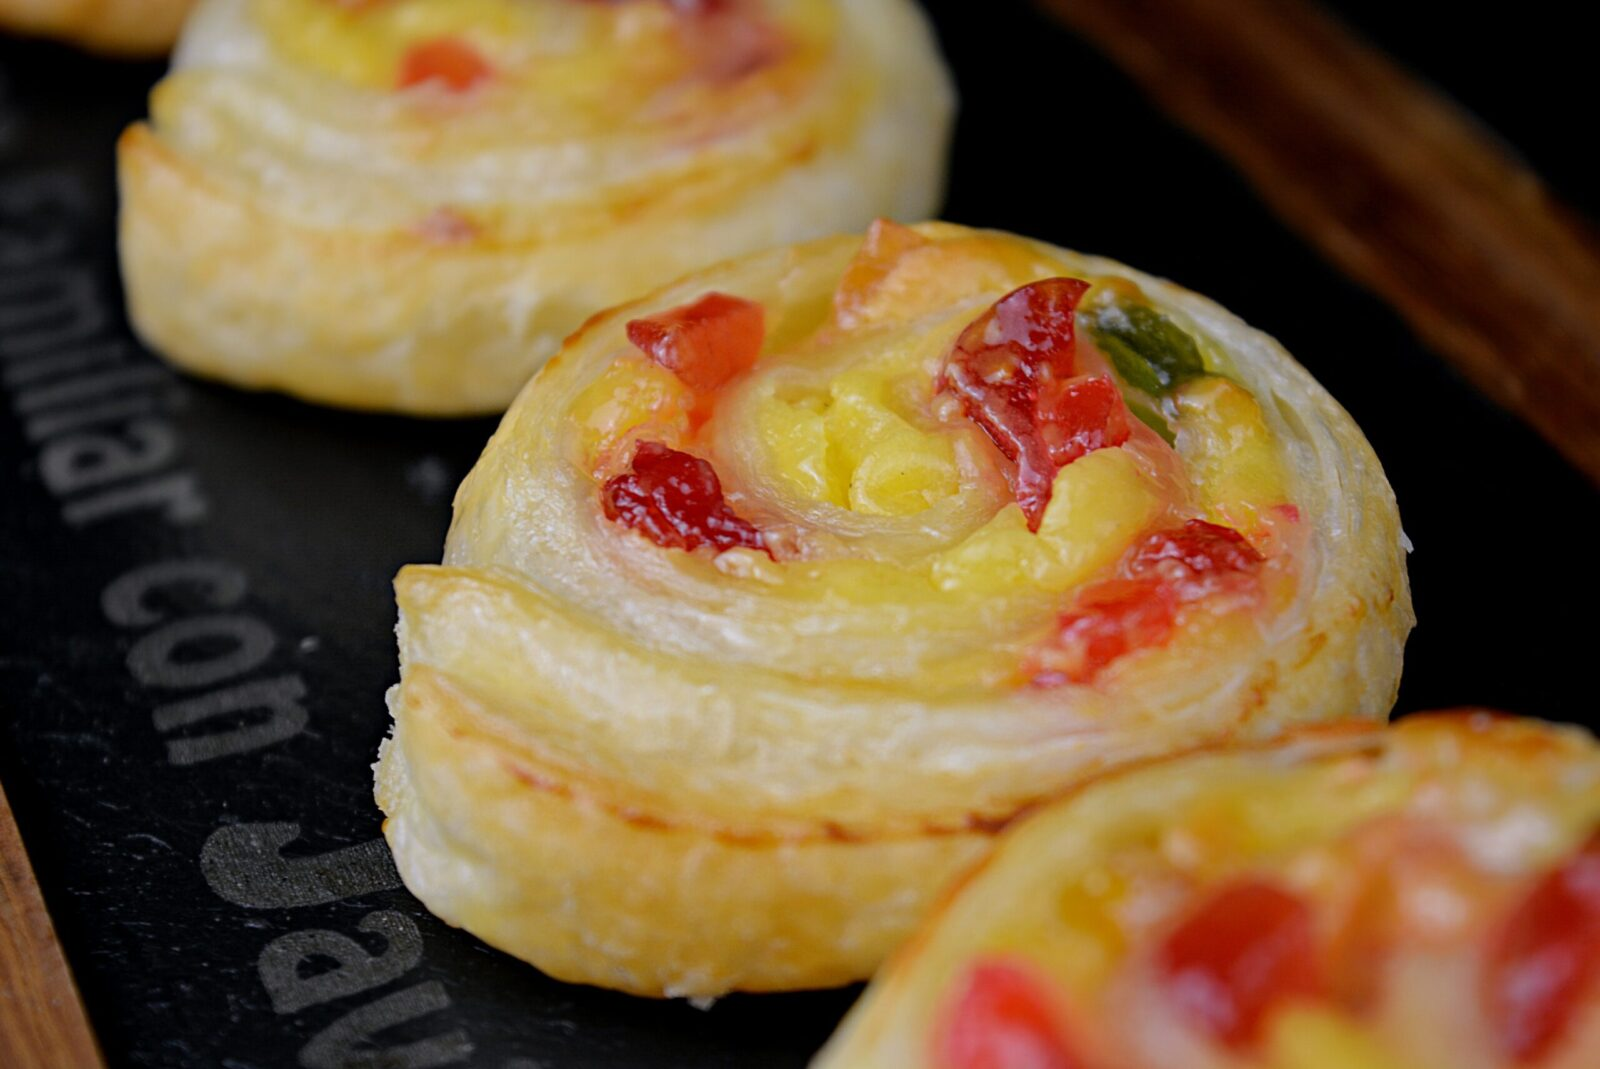 Puff pastry shells with confectionery cream and fruit